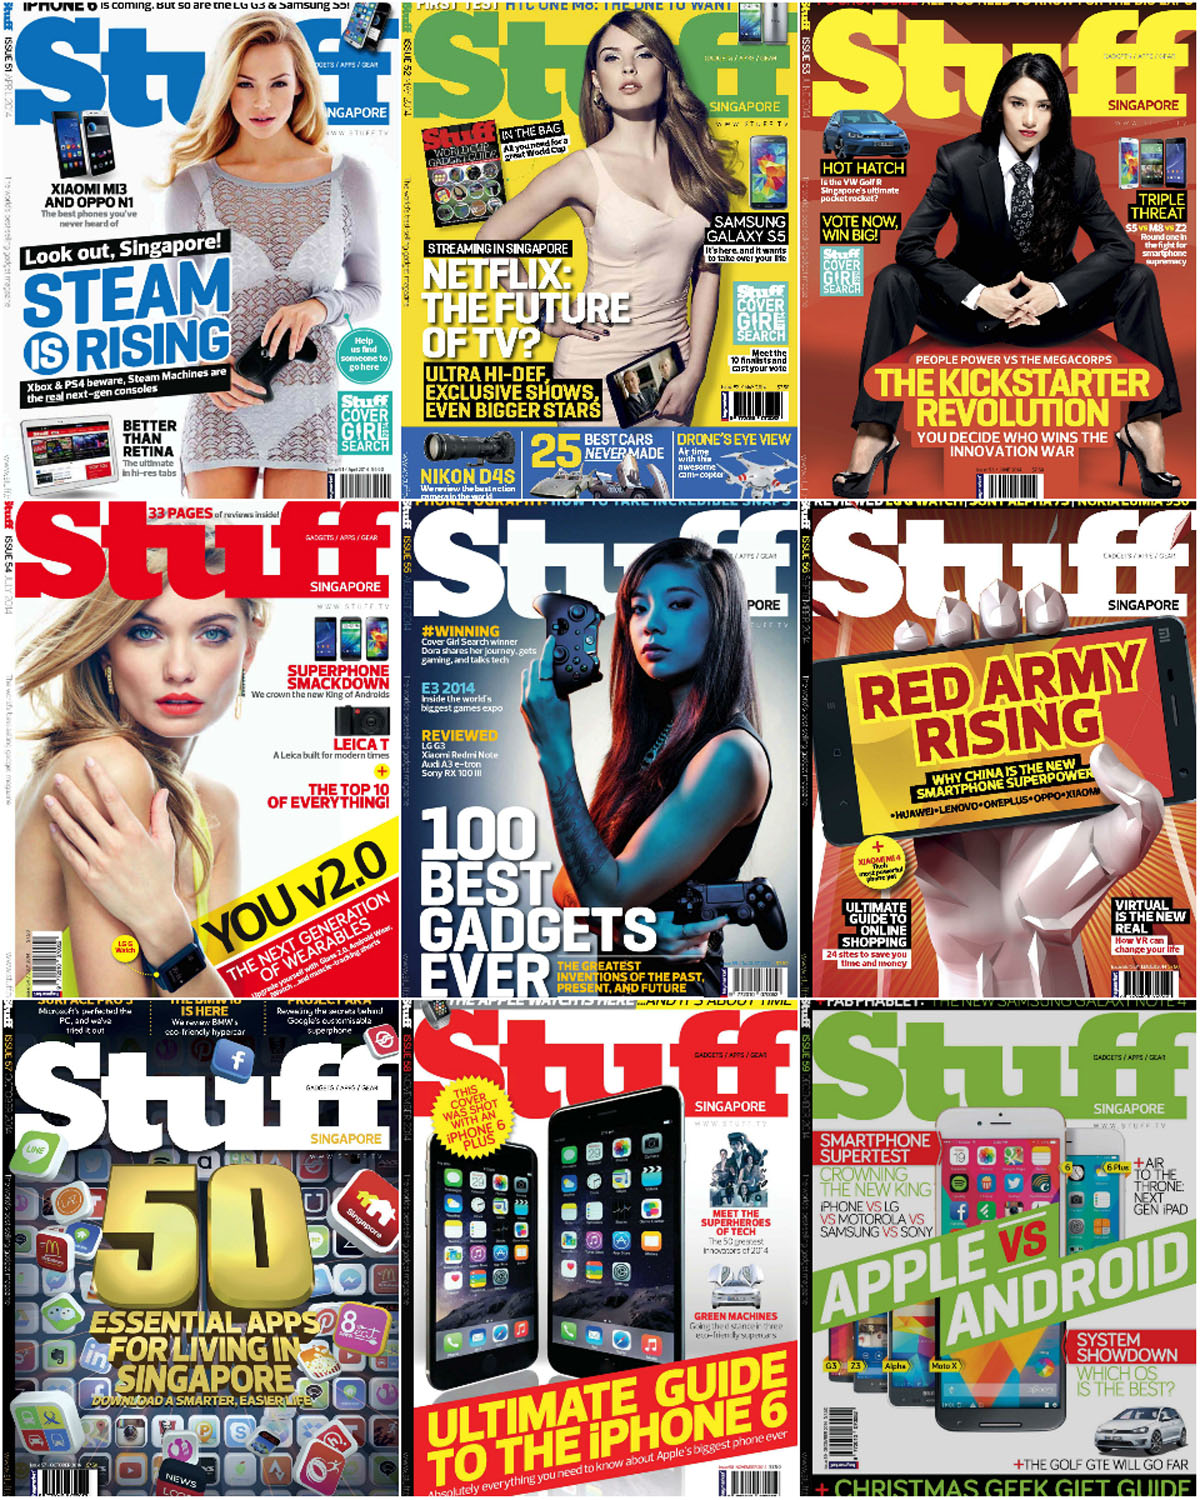 Stuff Singapore - Full Year 2014 Collection free download